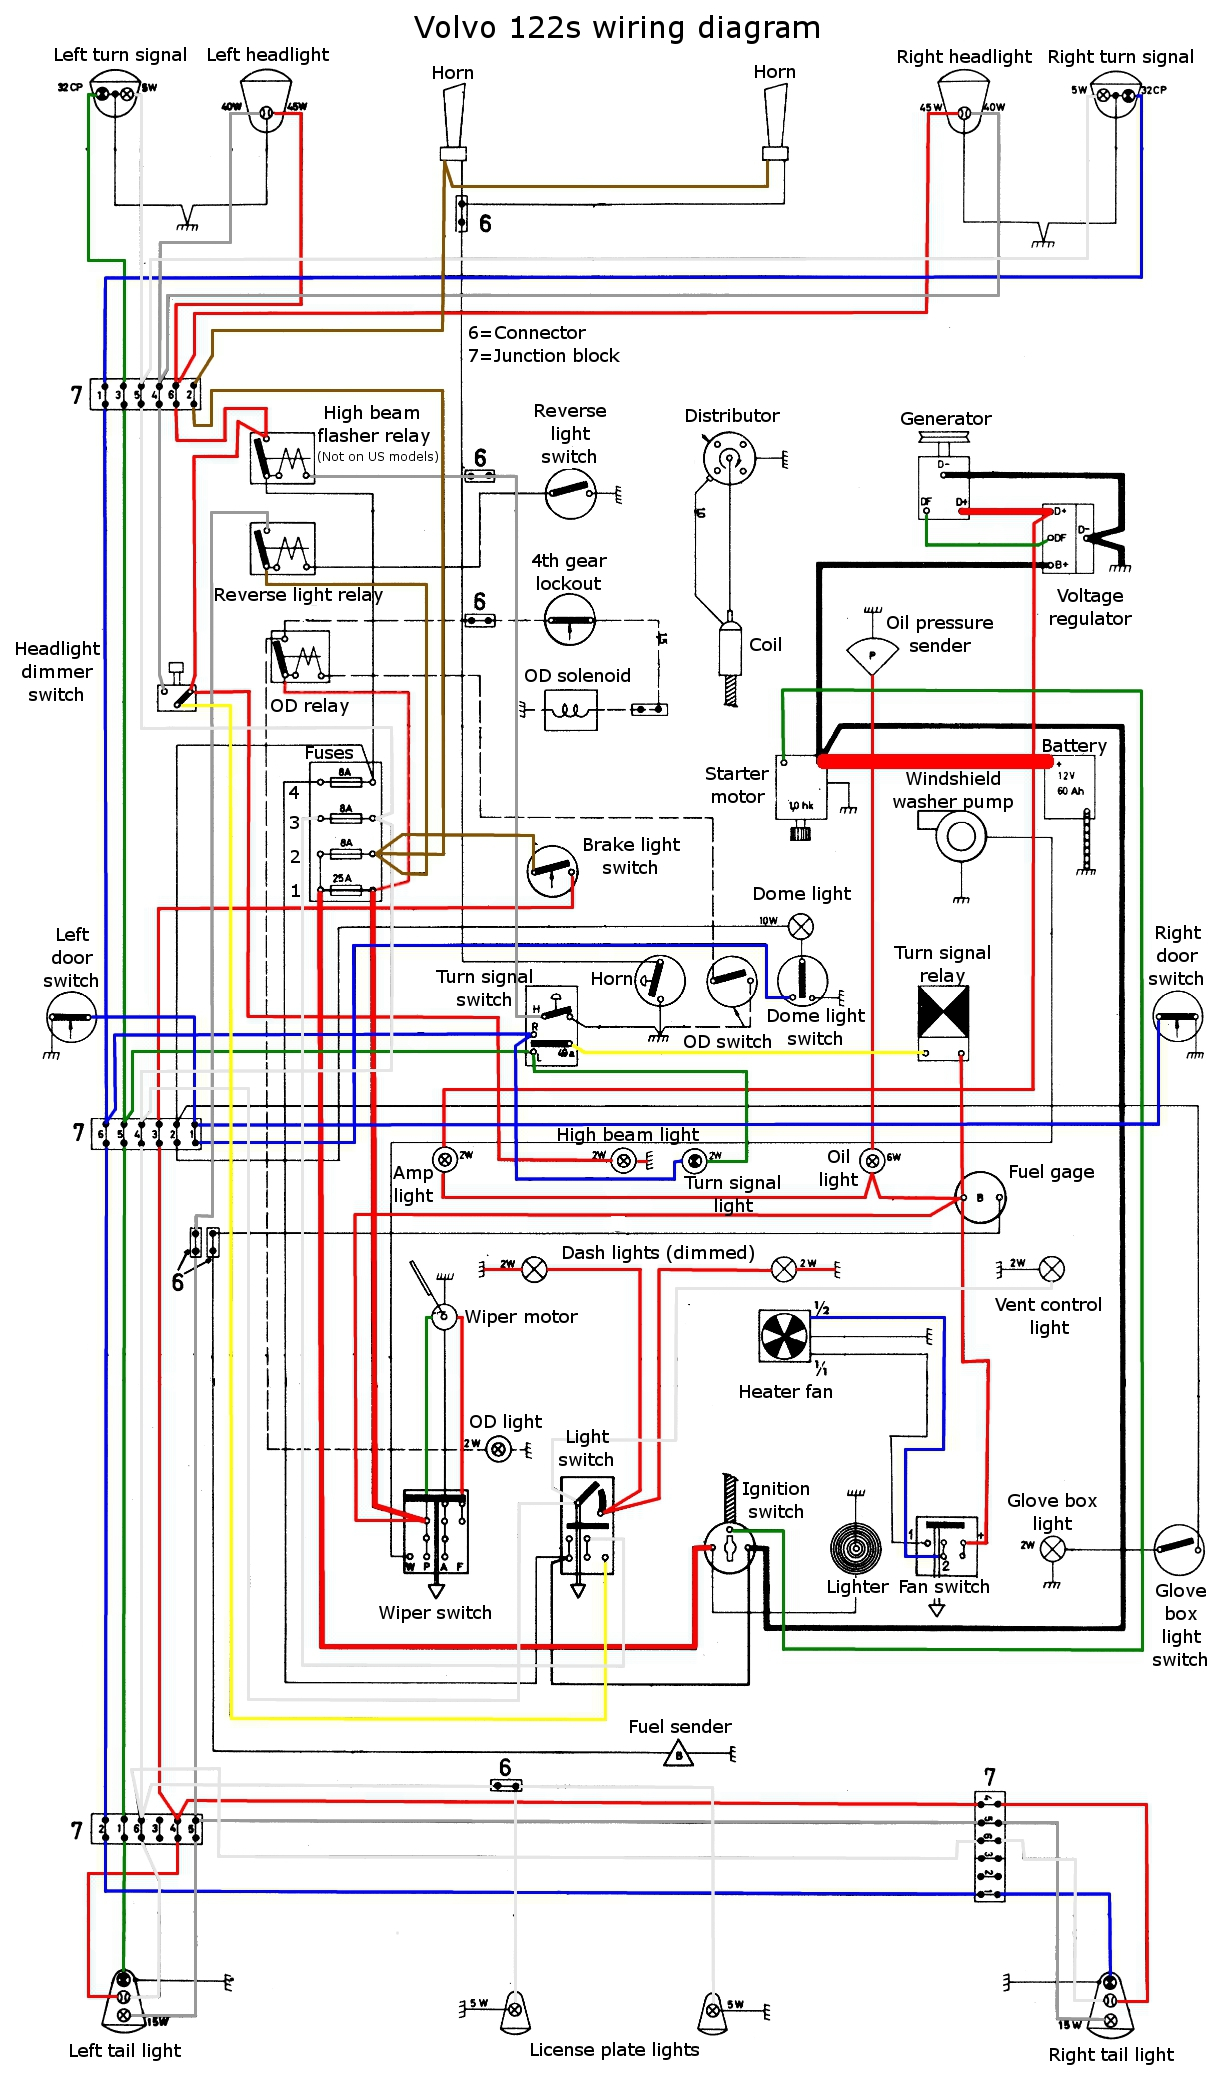 122 wiring diagram color wiring gremlins Vw R32 Wiring Diagram at mr168.co